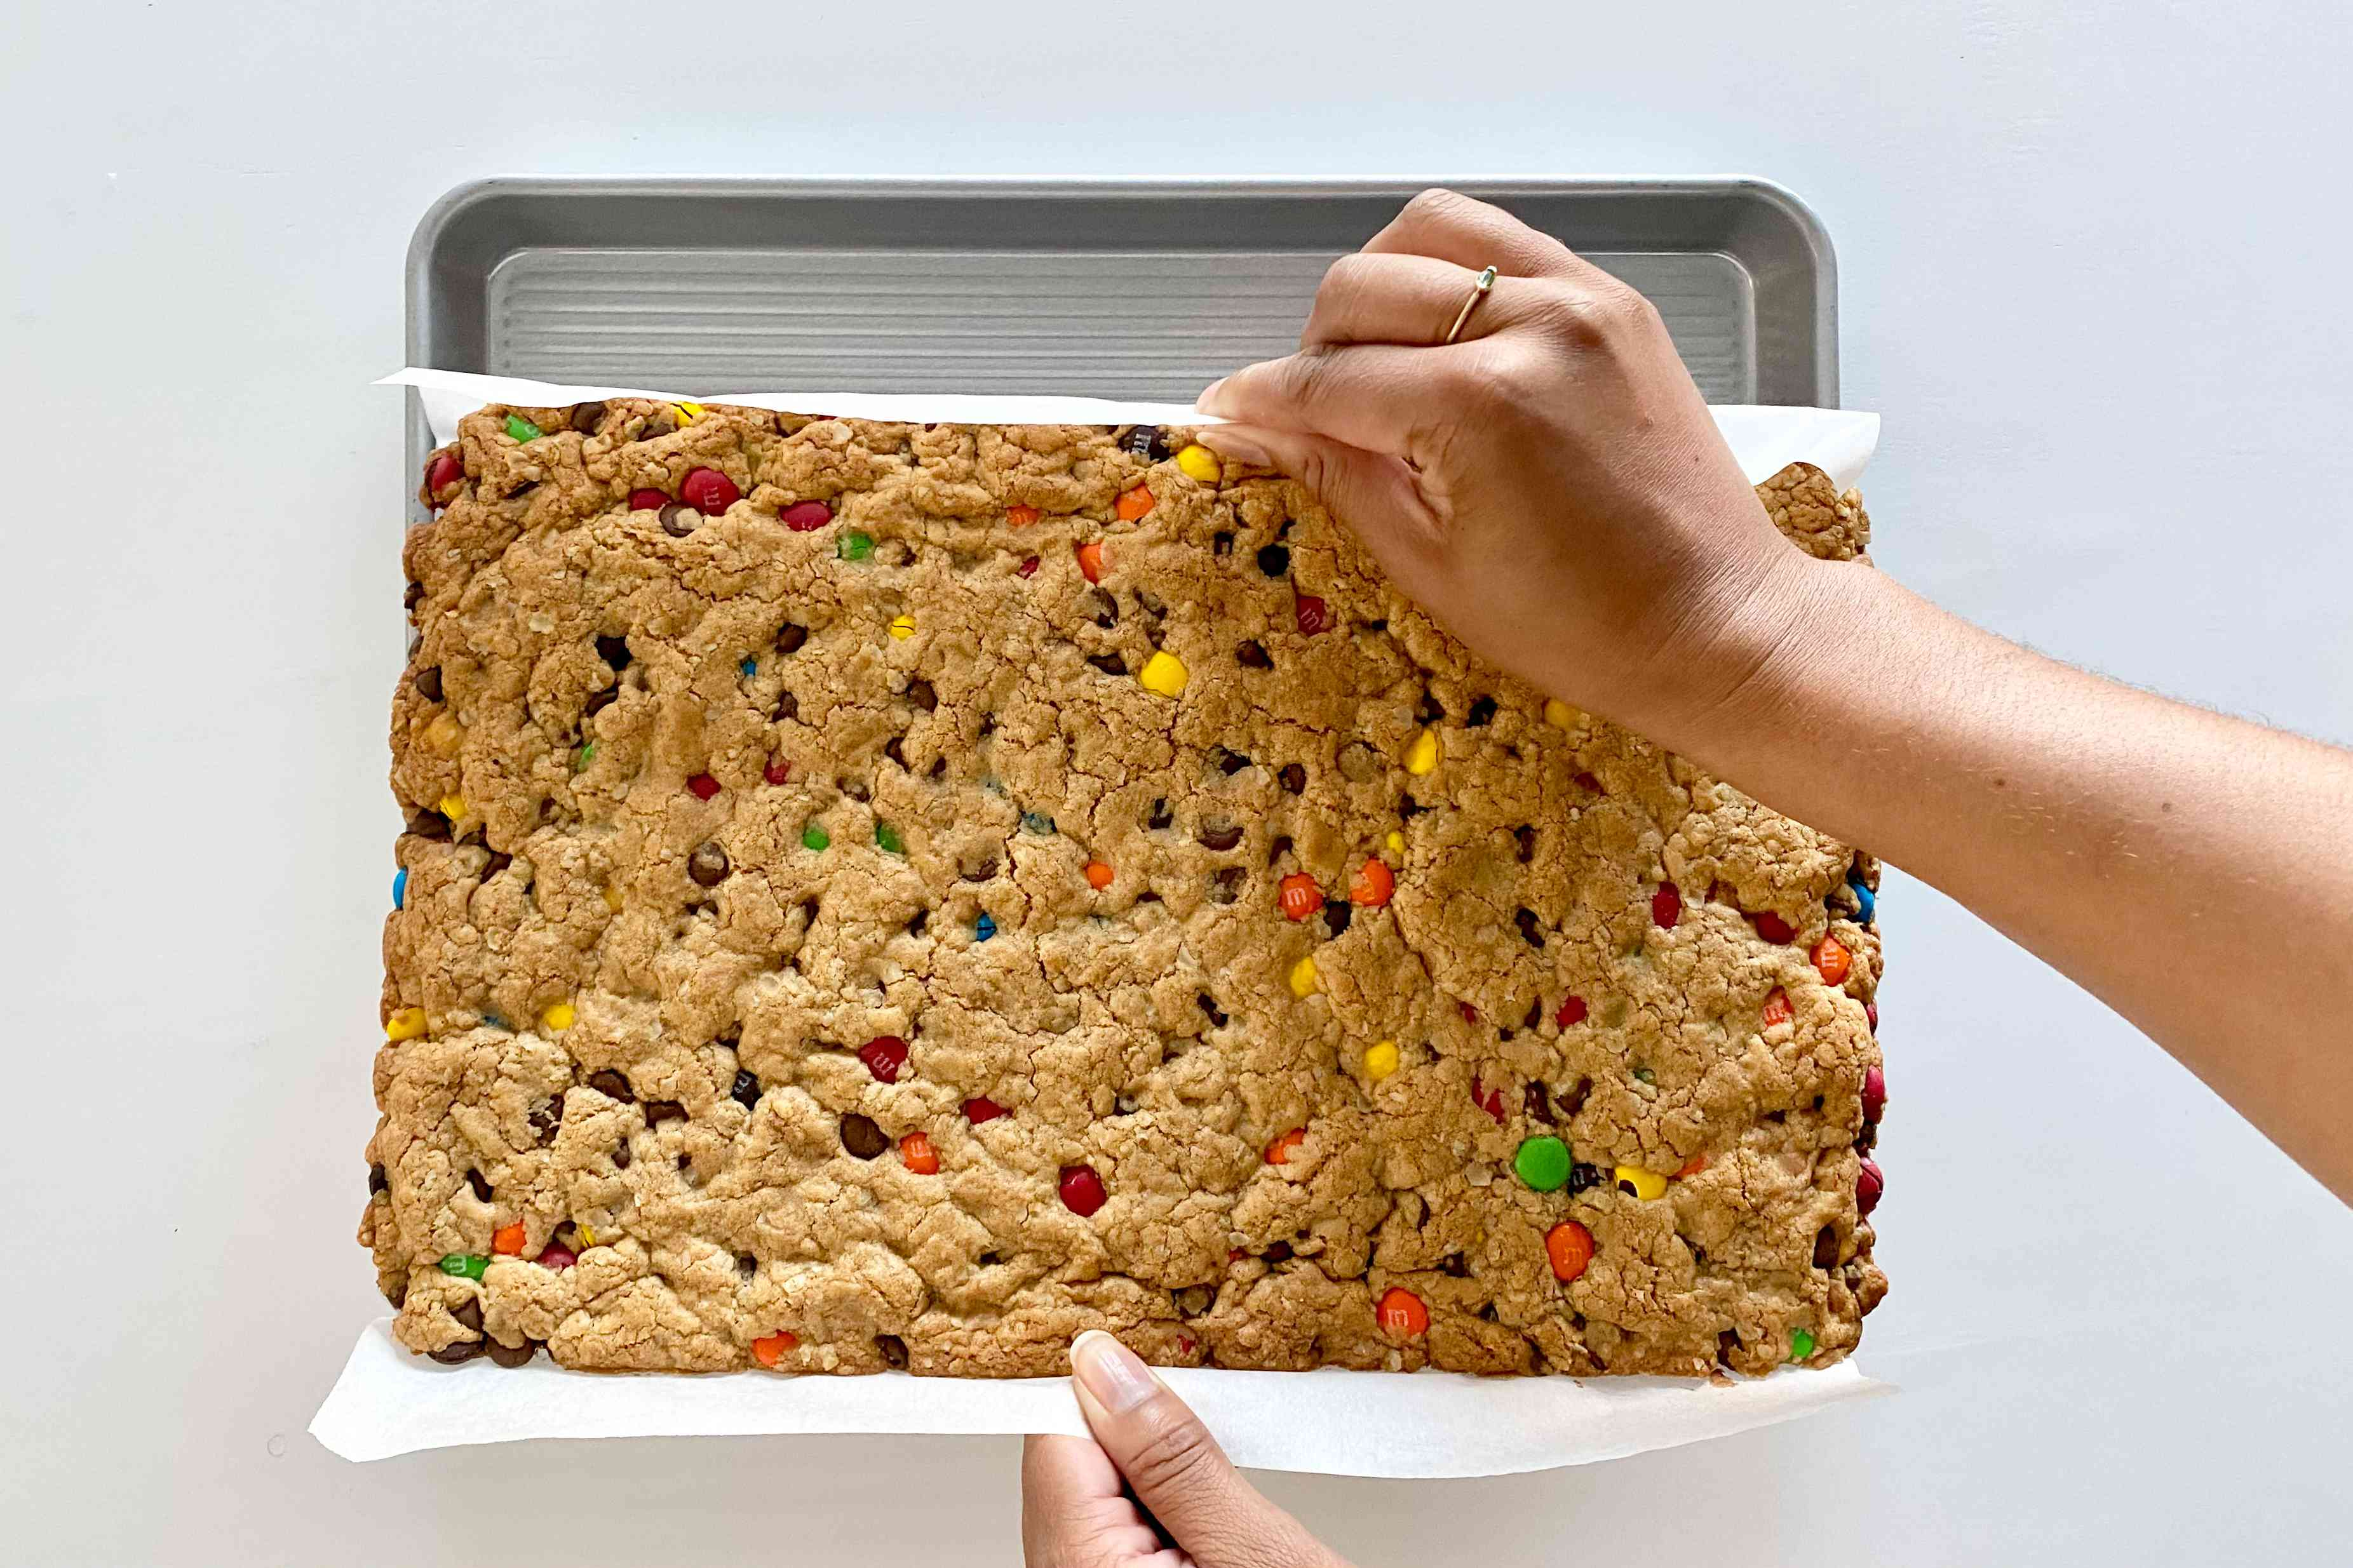 Removing Gluten-Free Sheet Pan Monster Cookies from the pan by holding the parchment.